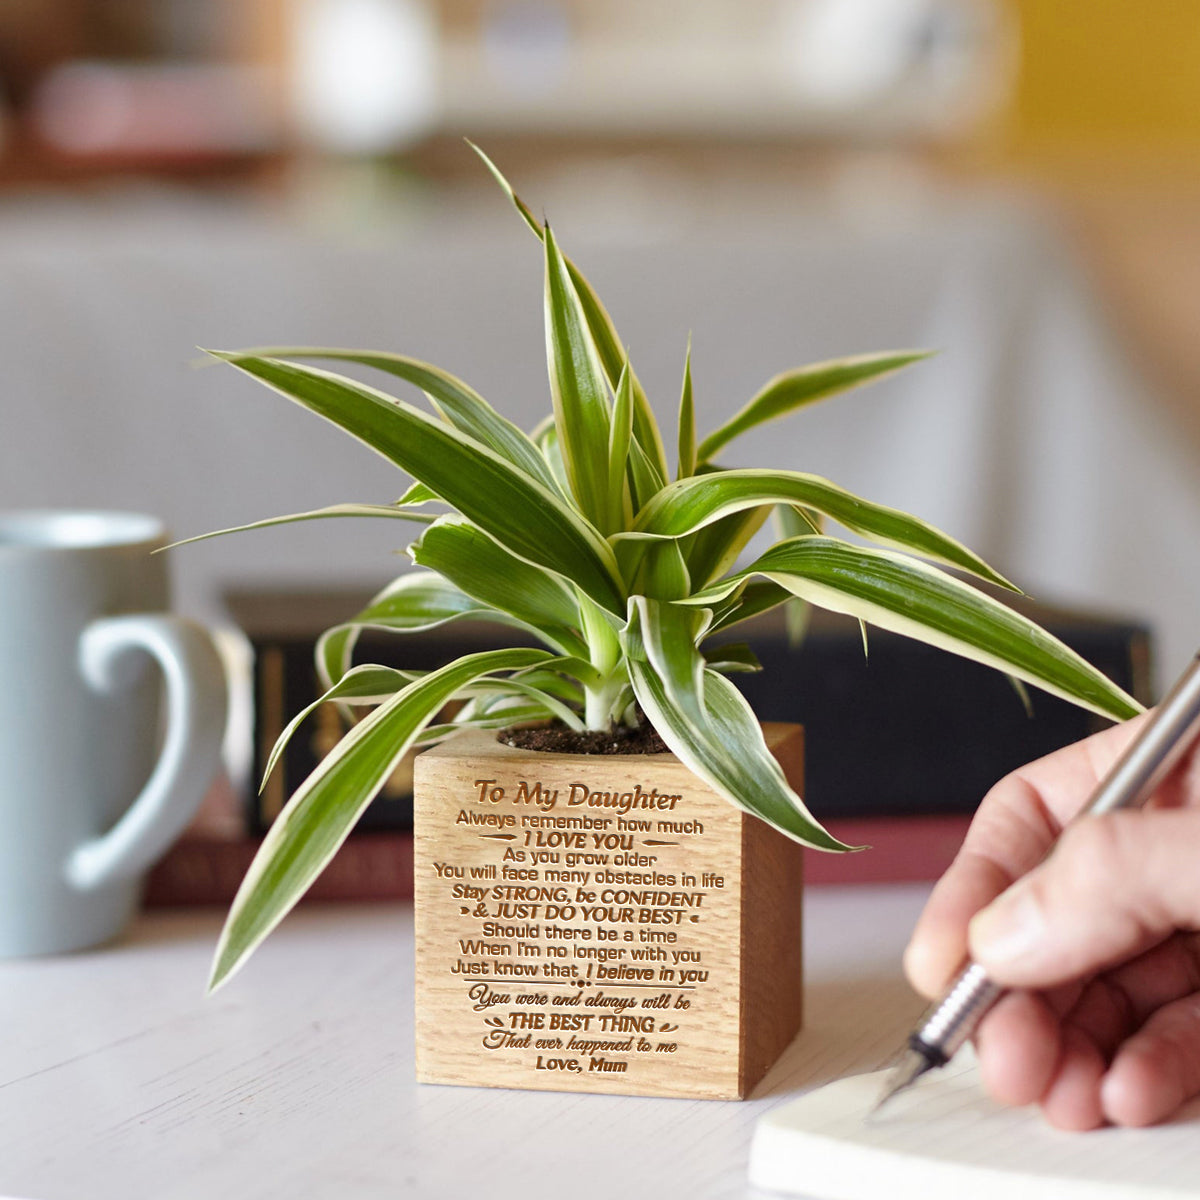 Mum To Daughter - Just Do Your Best - Engraved Plant Pot